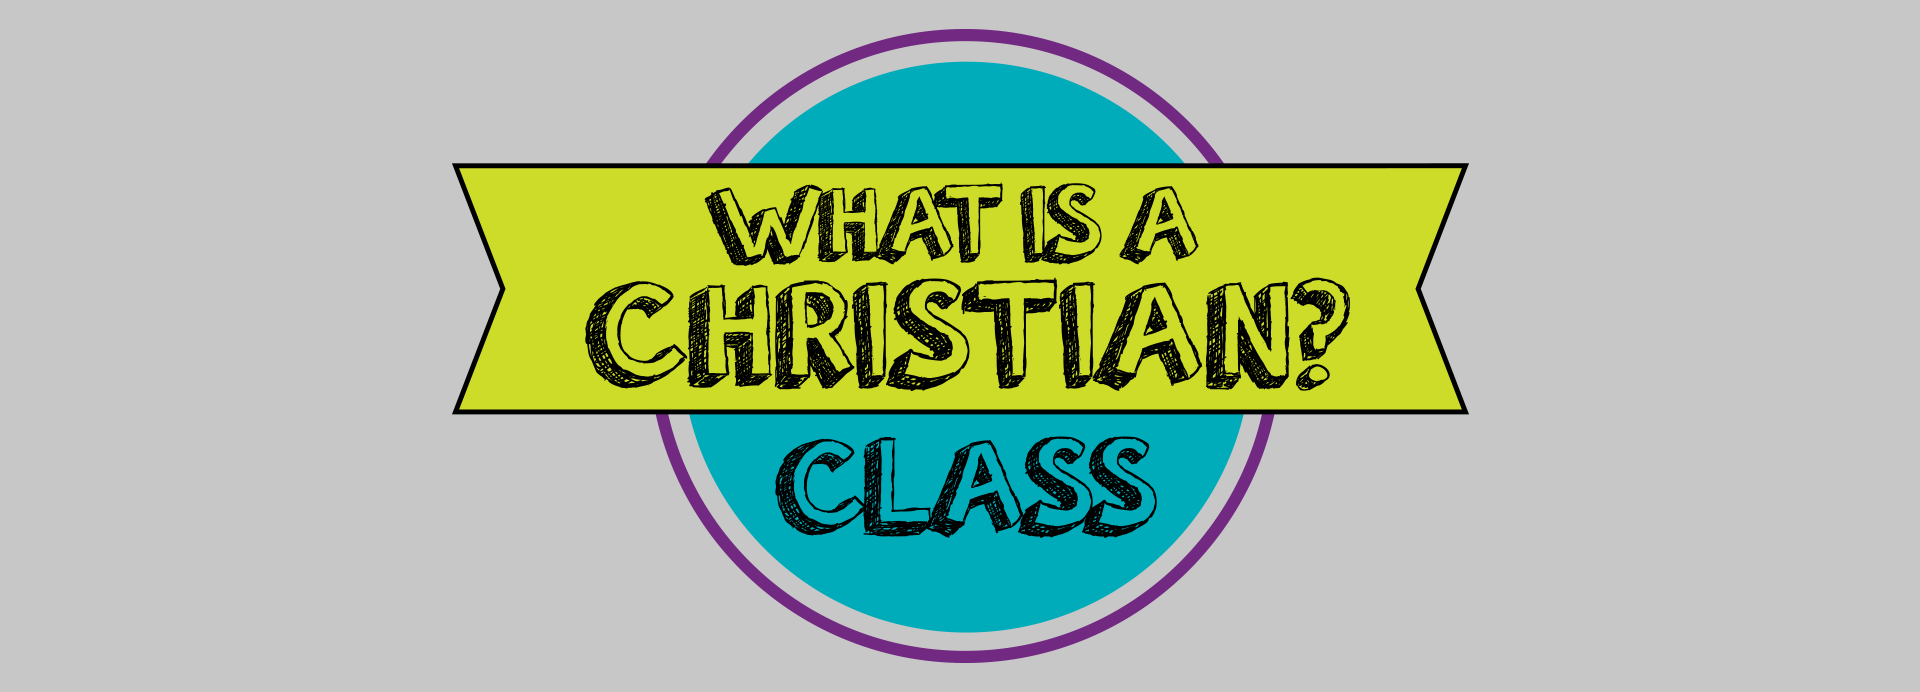 WhatisaChristianClass_banner.png